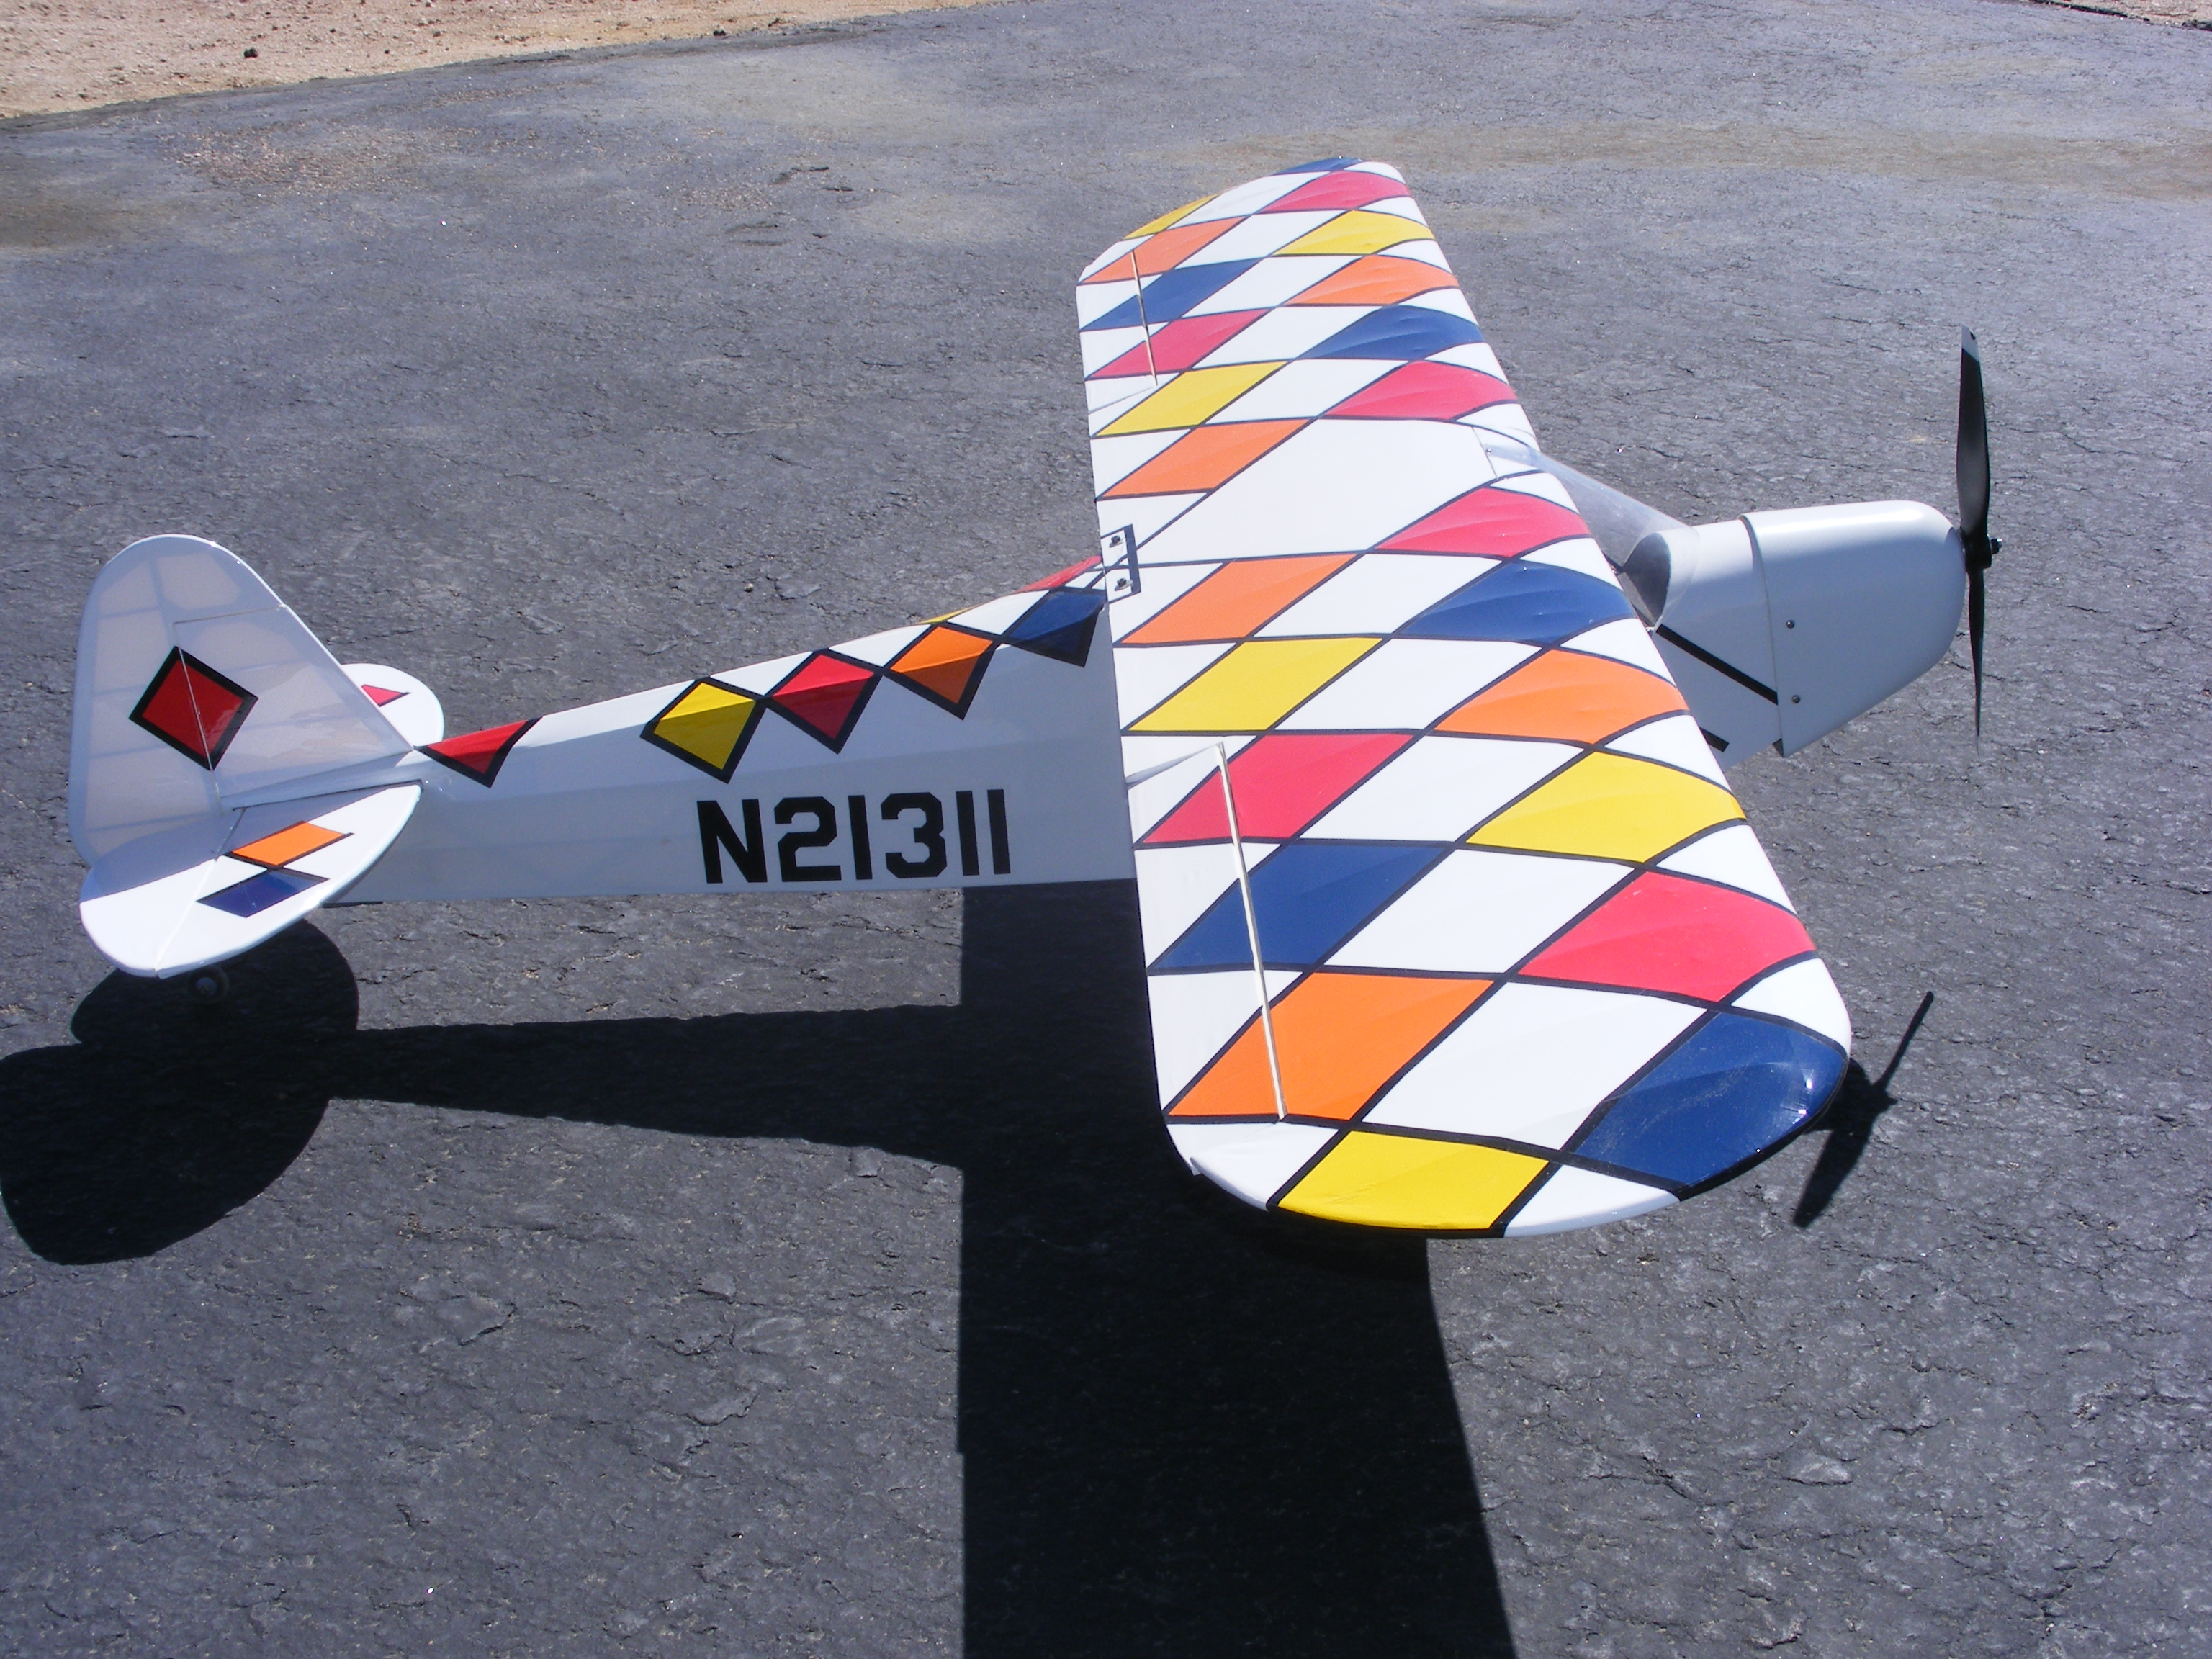 J 3 Cub-Fun with covering